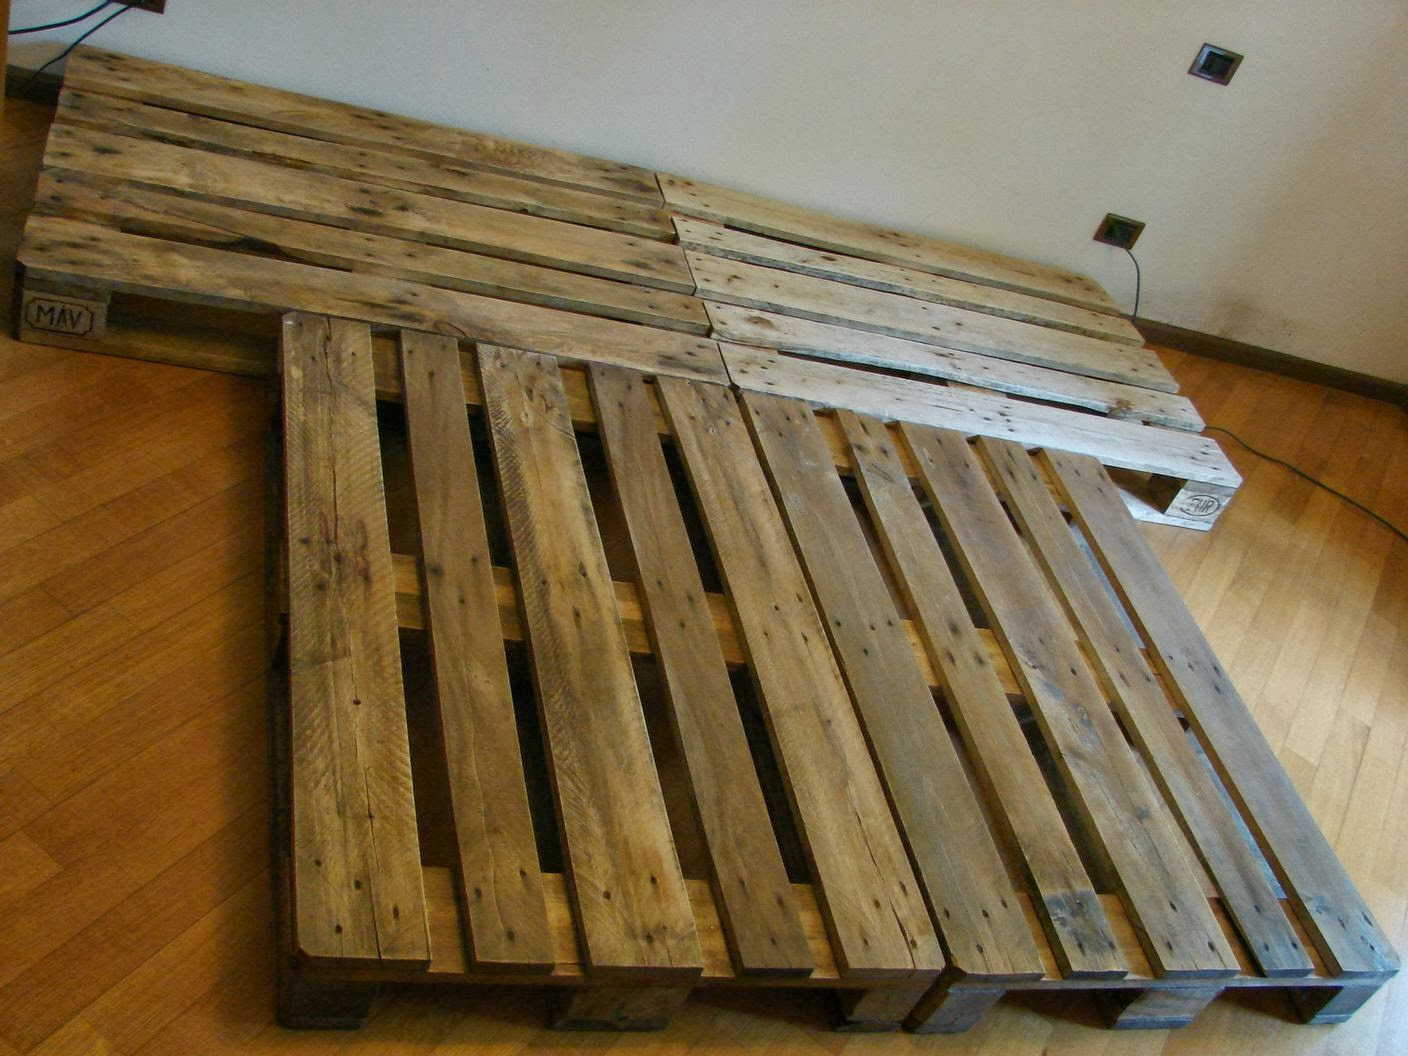 wearecomplicated letto con pallet bancali